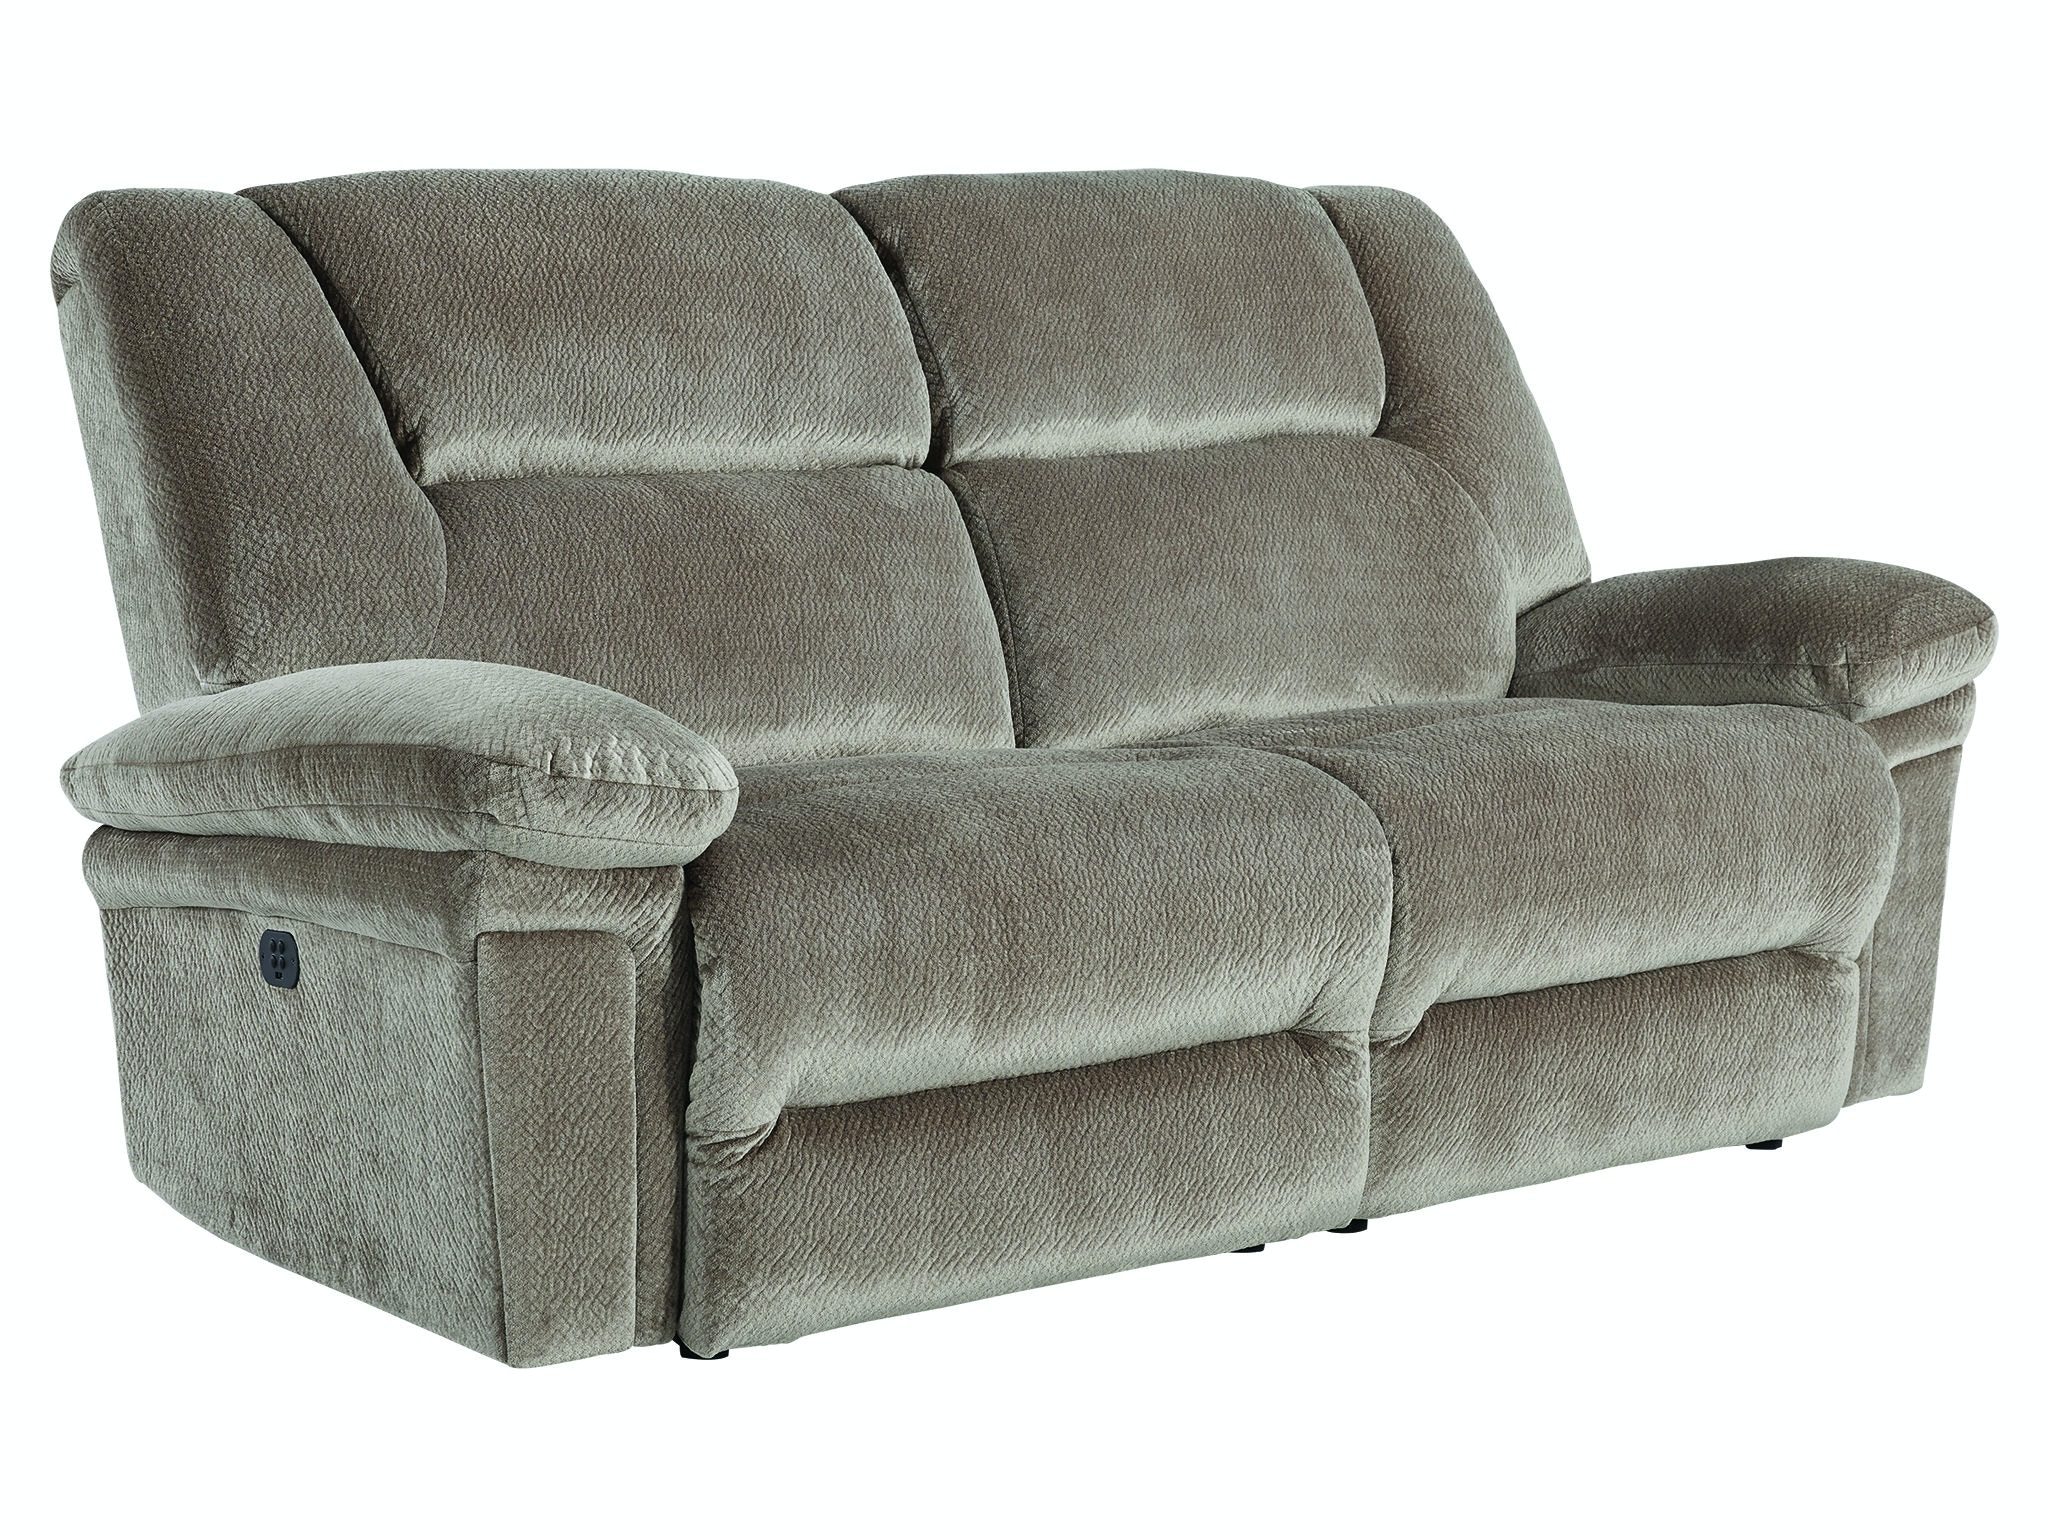 Best Home Furnishings Sofa Reclining 2 Seat Power Parker S610RZ4